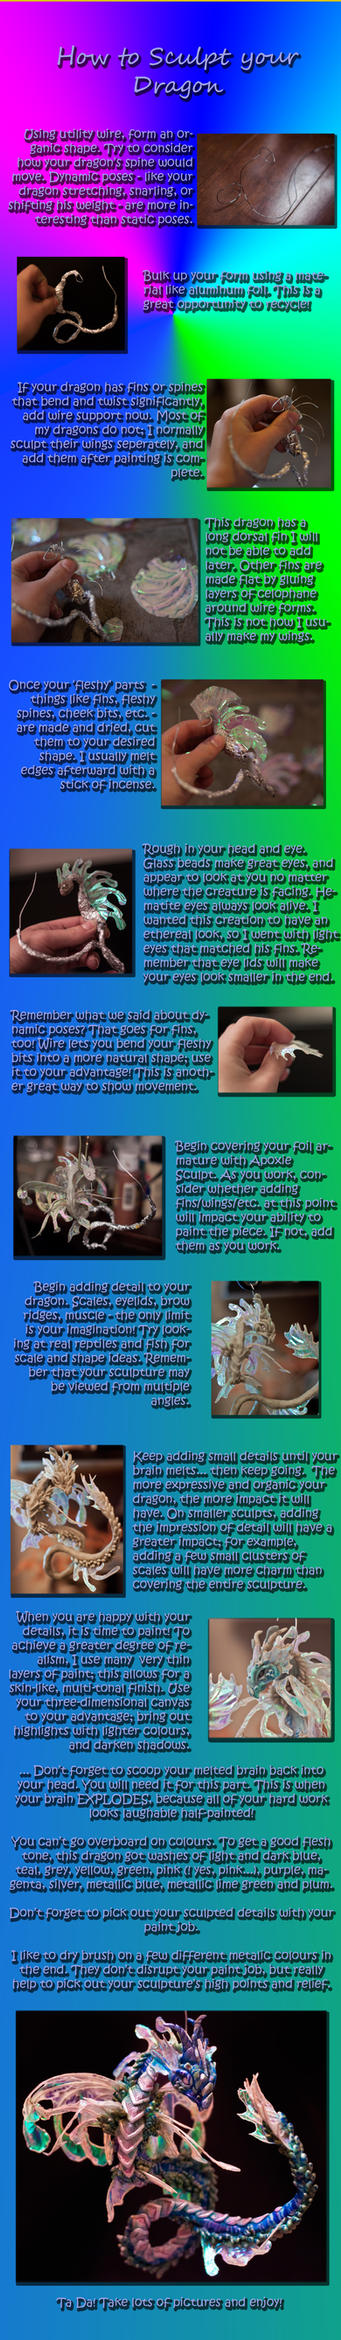 Dragon Sculpture Tutorial by QuinapalusTheFool